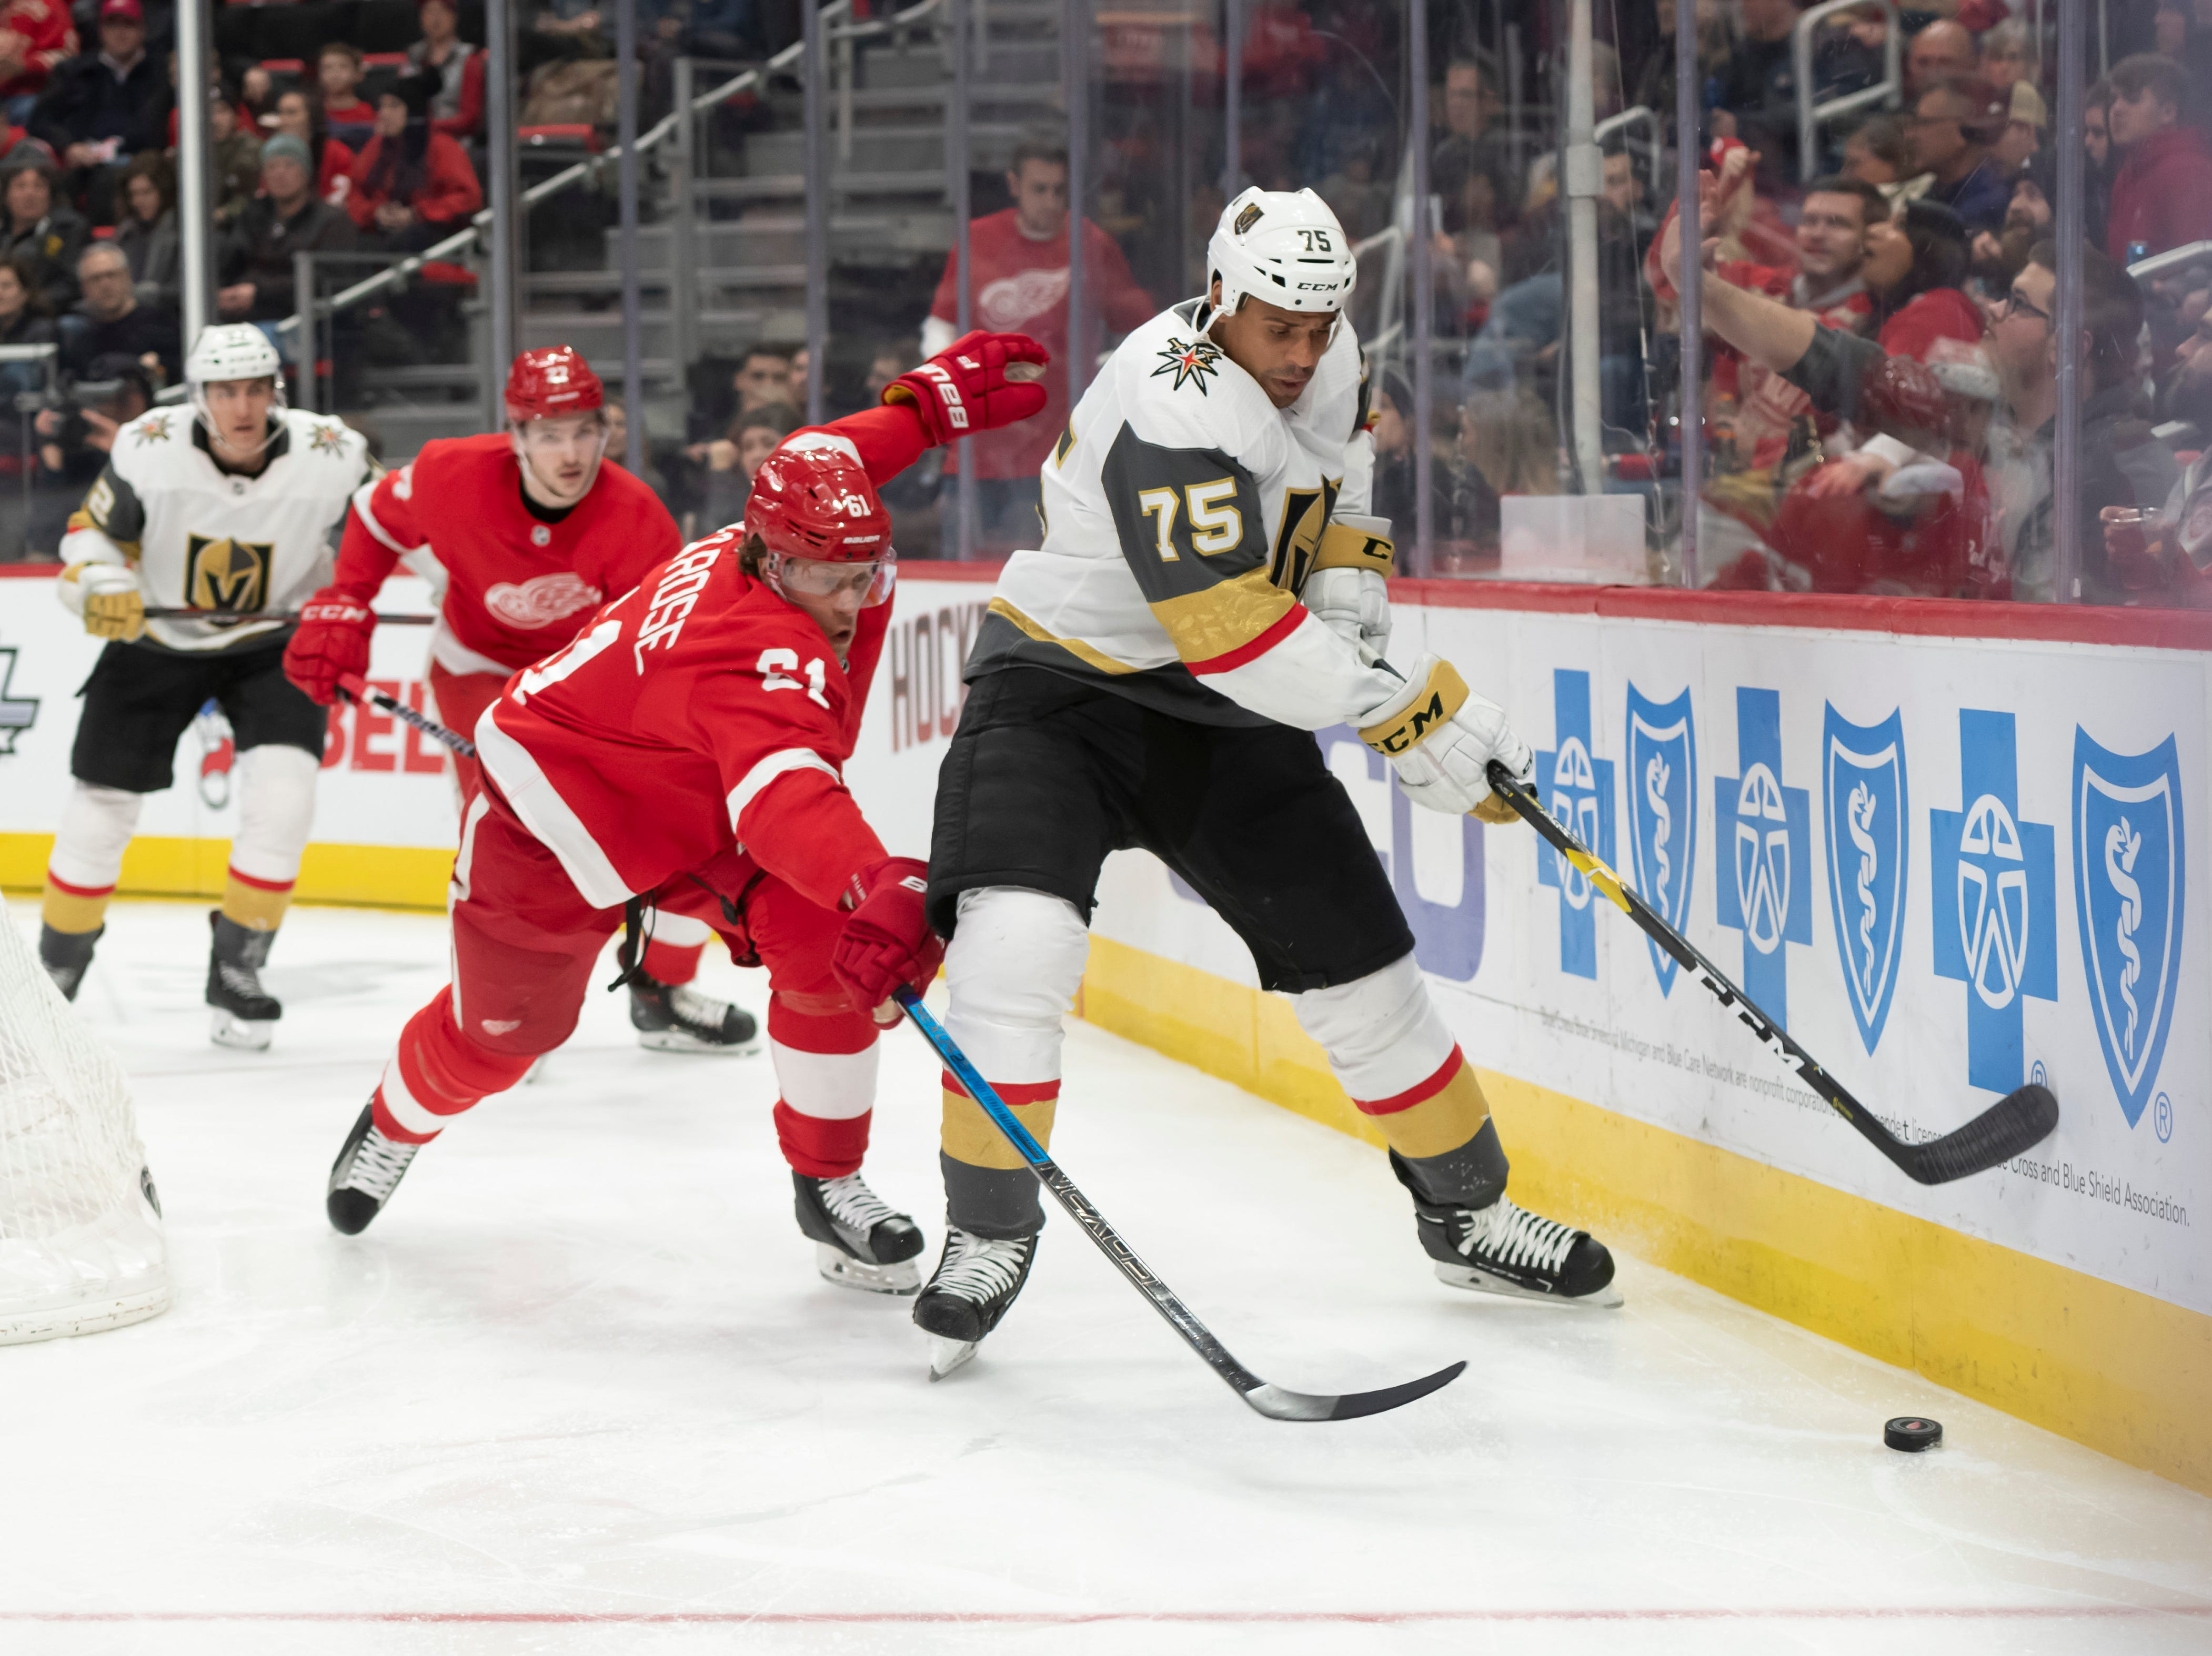 Detroit defenseman Dennis Cholowski tires to steal the puck away from Vegas right wing Ryan Reaves in the second period.